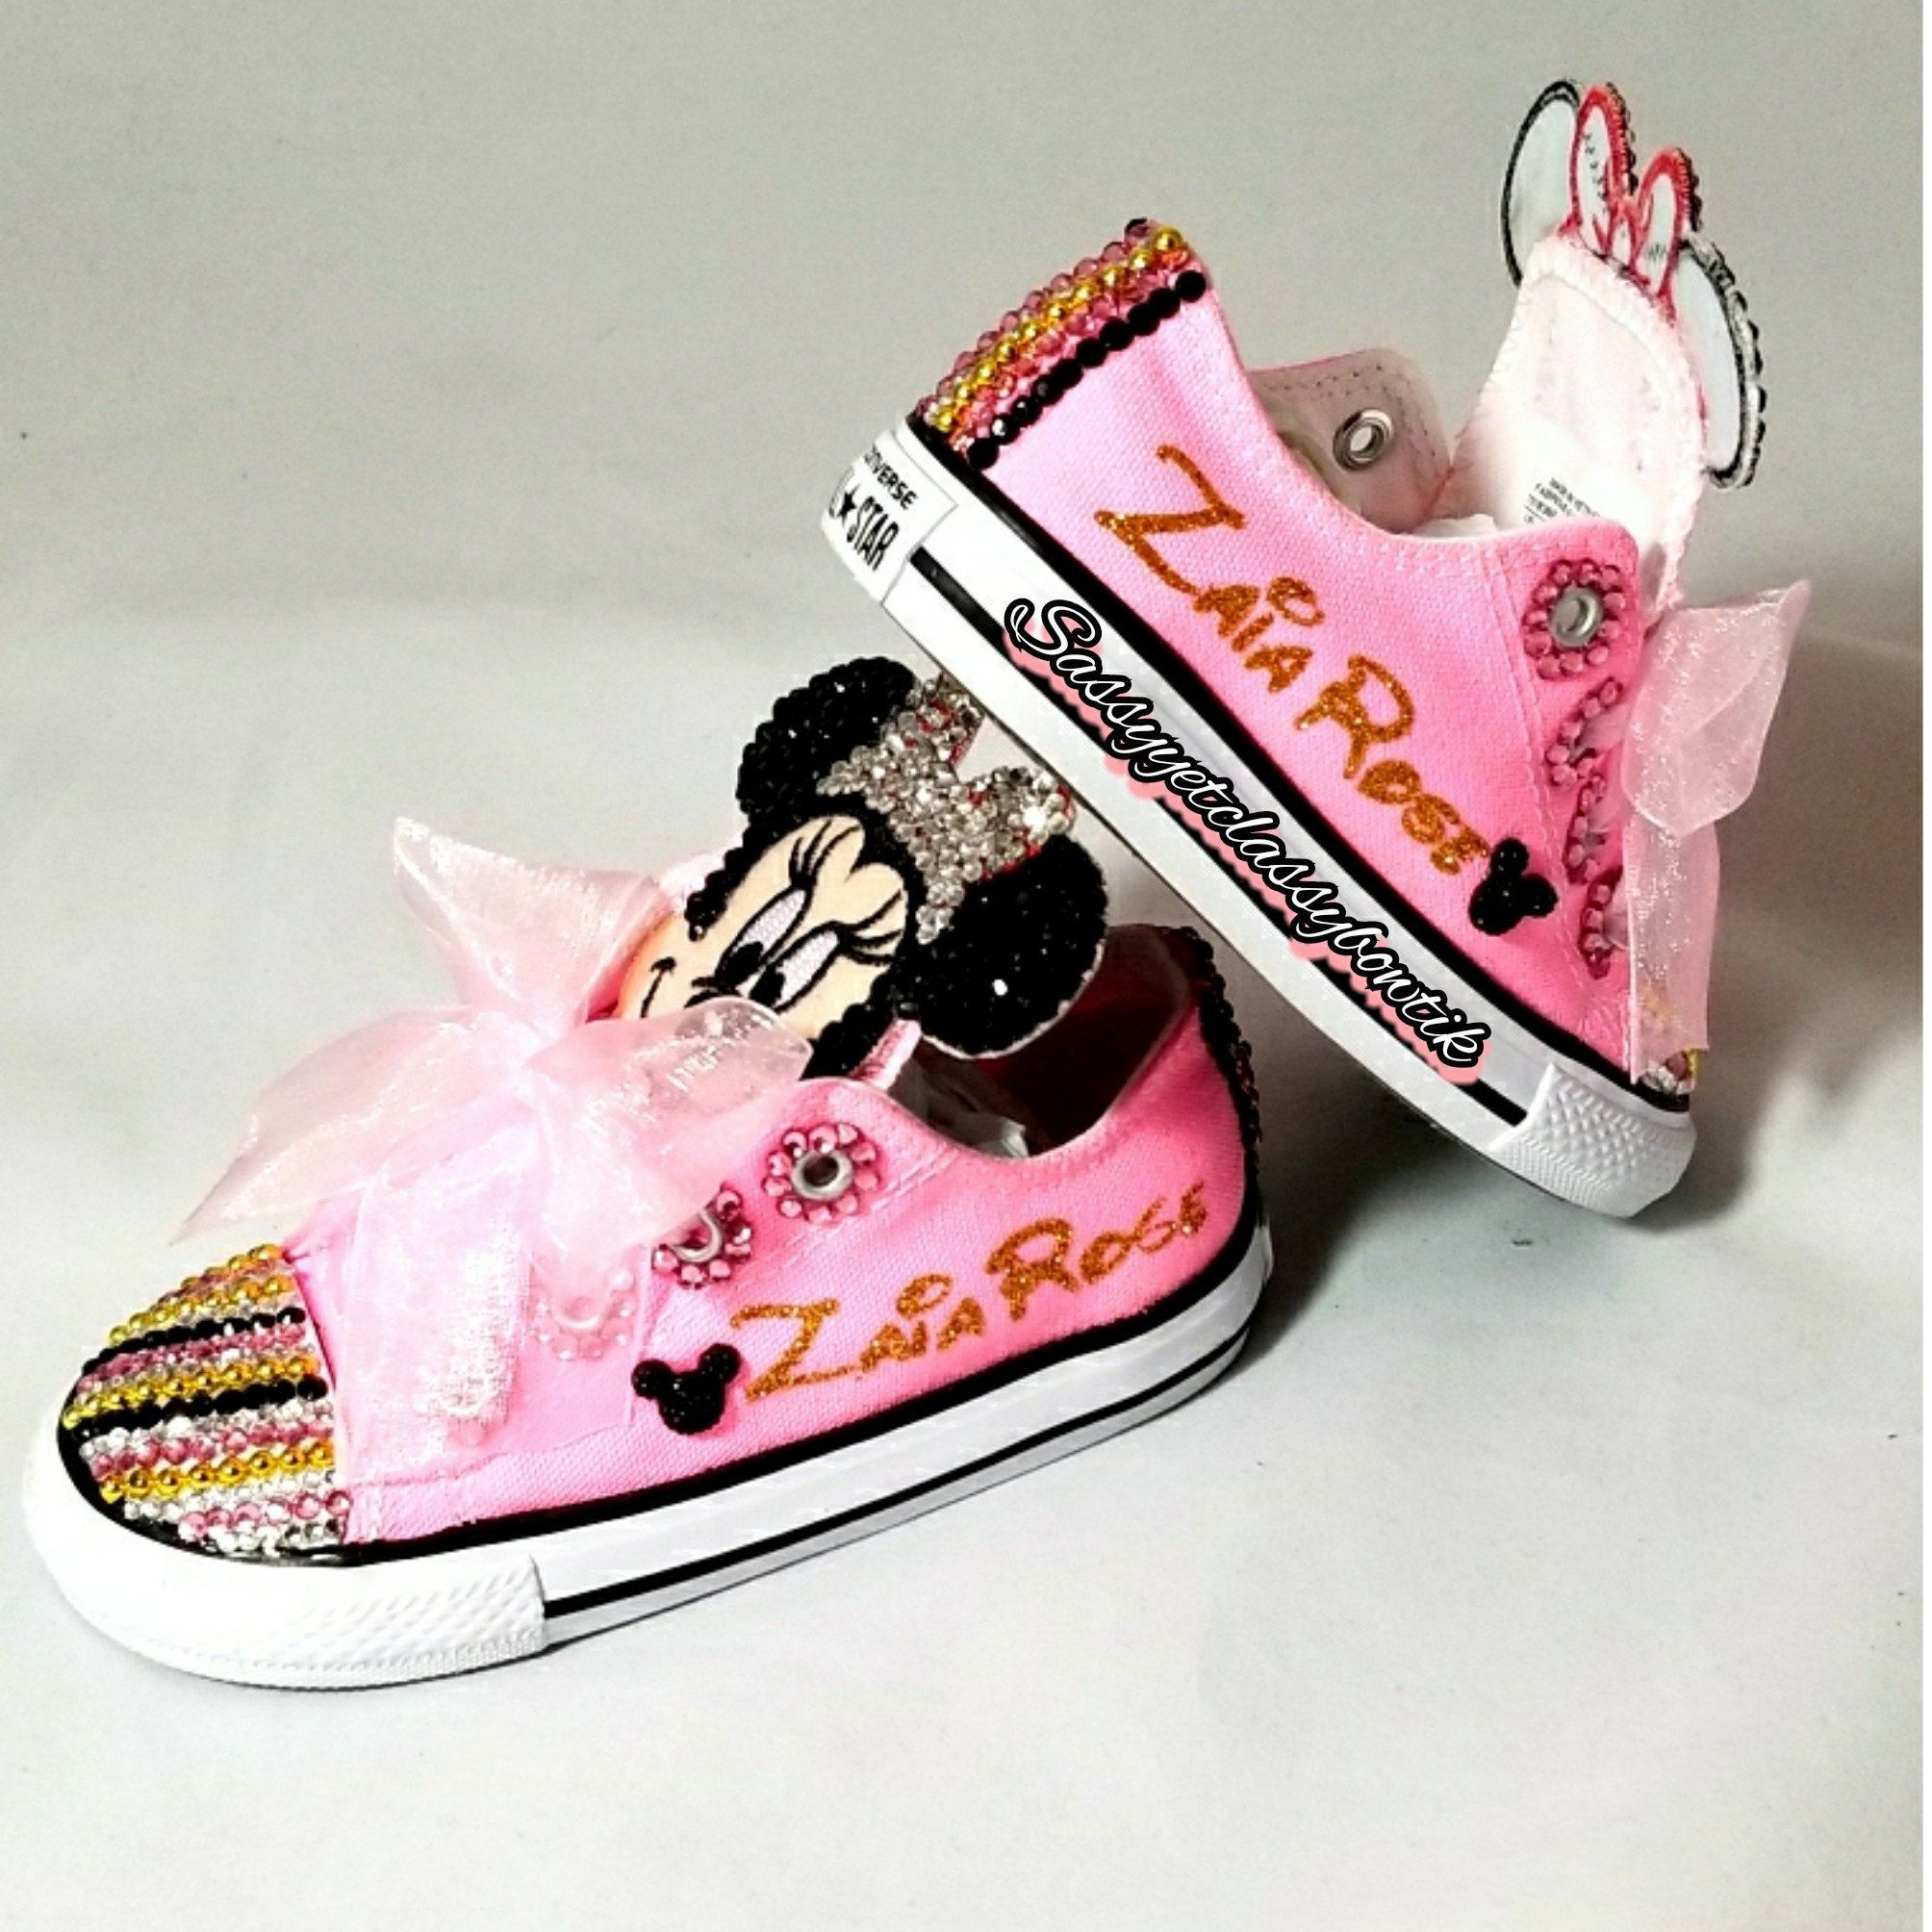 c0af885907df03 Minnie Mouse's custom sneakers Minnie Mouse shoes Bling shoes Birthday  shoes Toddler girls converse Bling converse Bling chucks Personalized shoes  ...